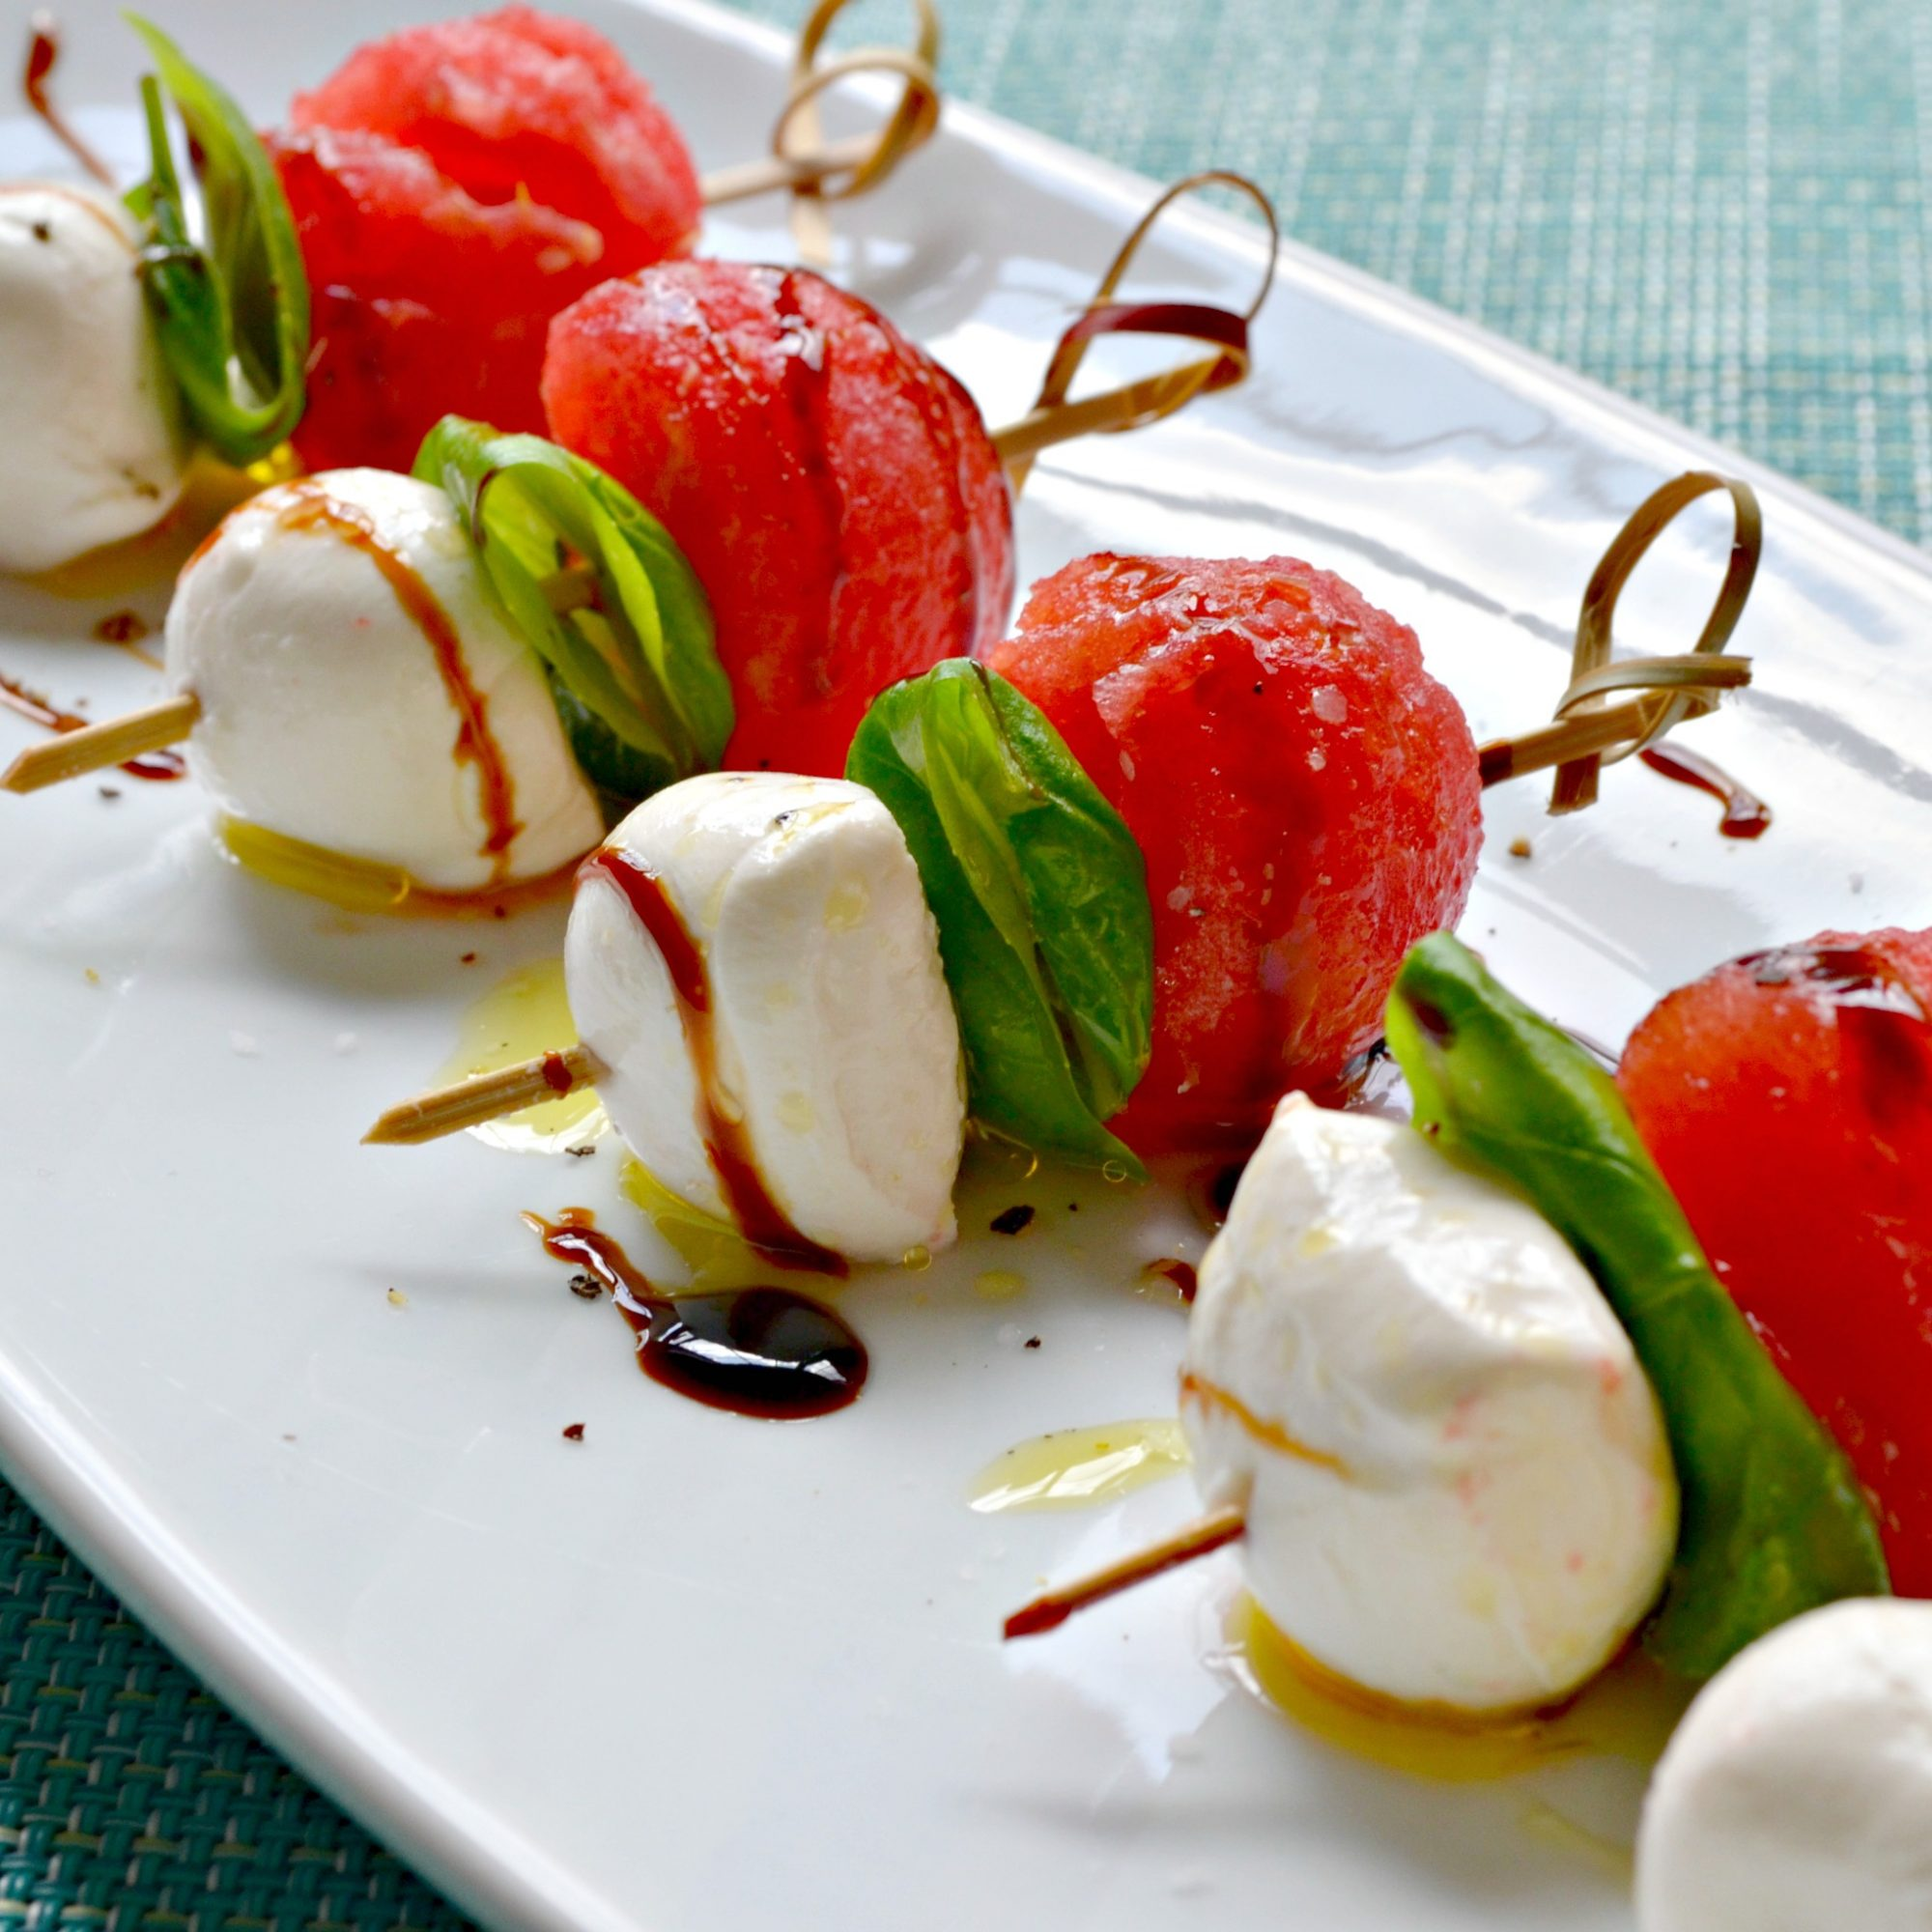 a row of fancy toothpicks holding fresh mozzarella balls, basil leaves, and watermelon balls on a white tray, with a drizzle of balsamic vinegar